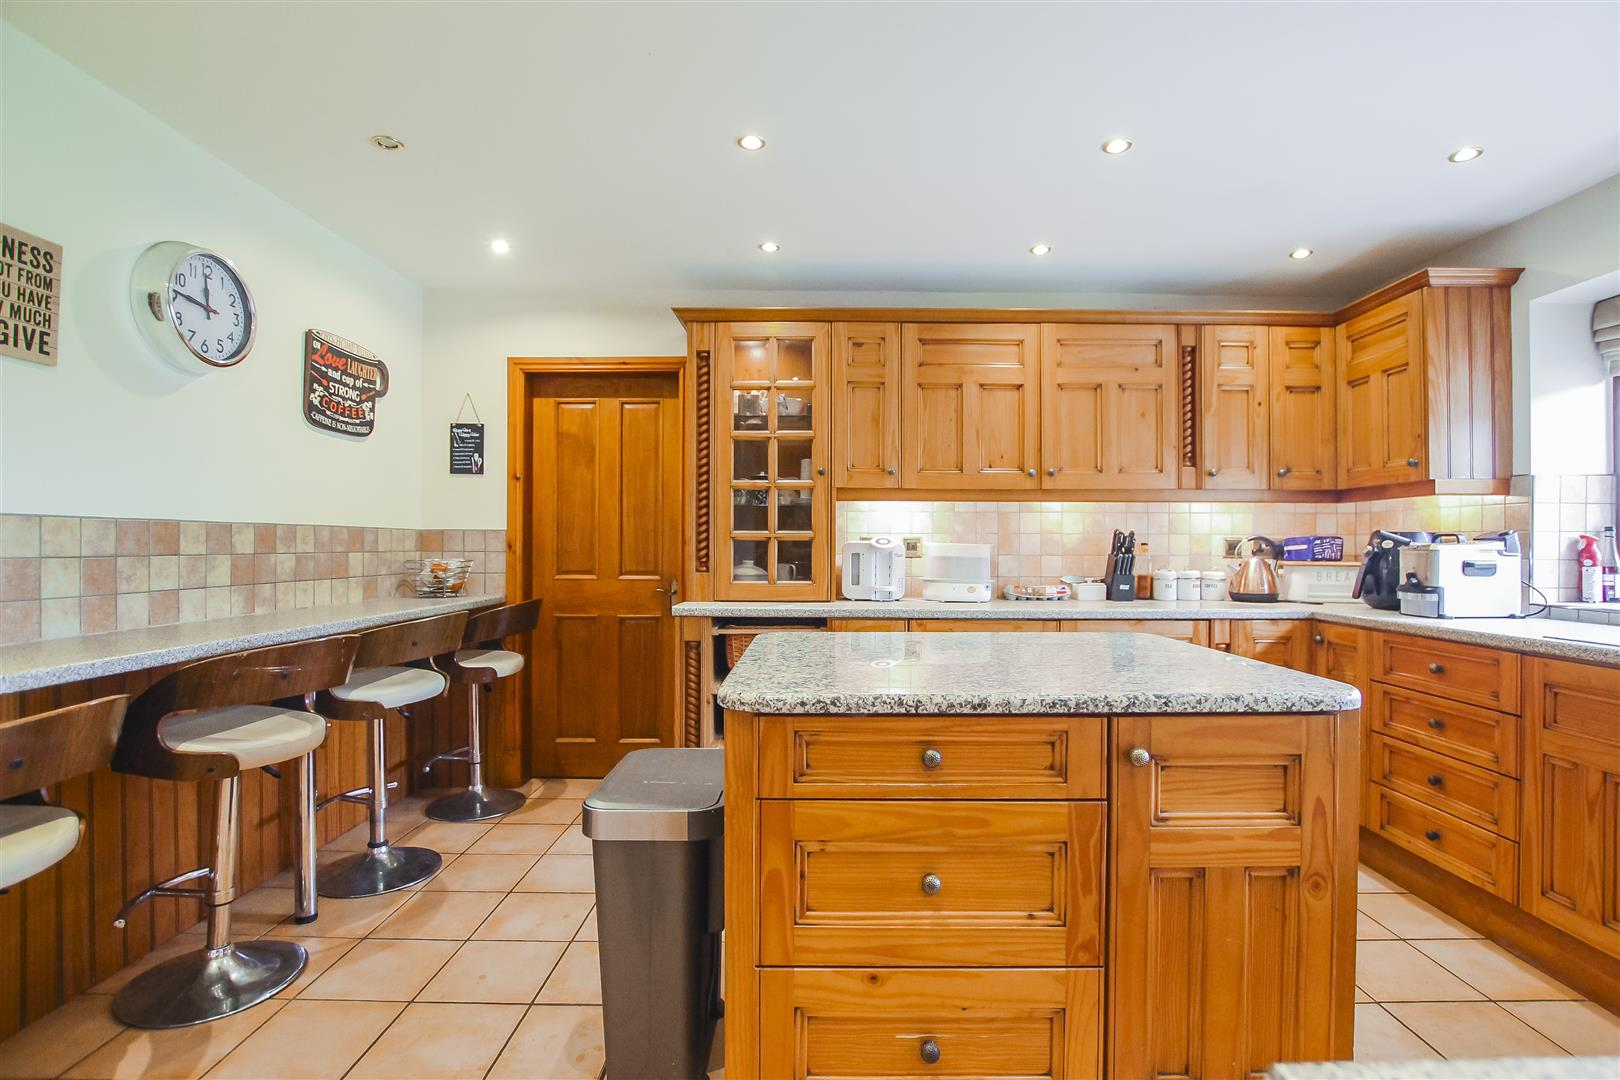 5 Bedroom Barn Conversion For Sale - Image 33